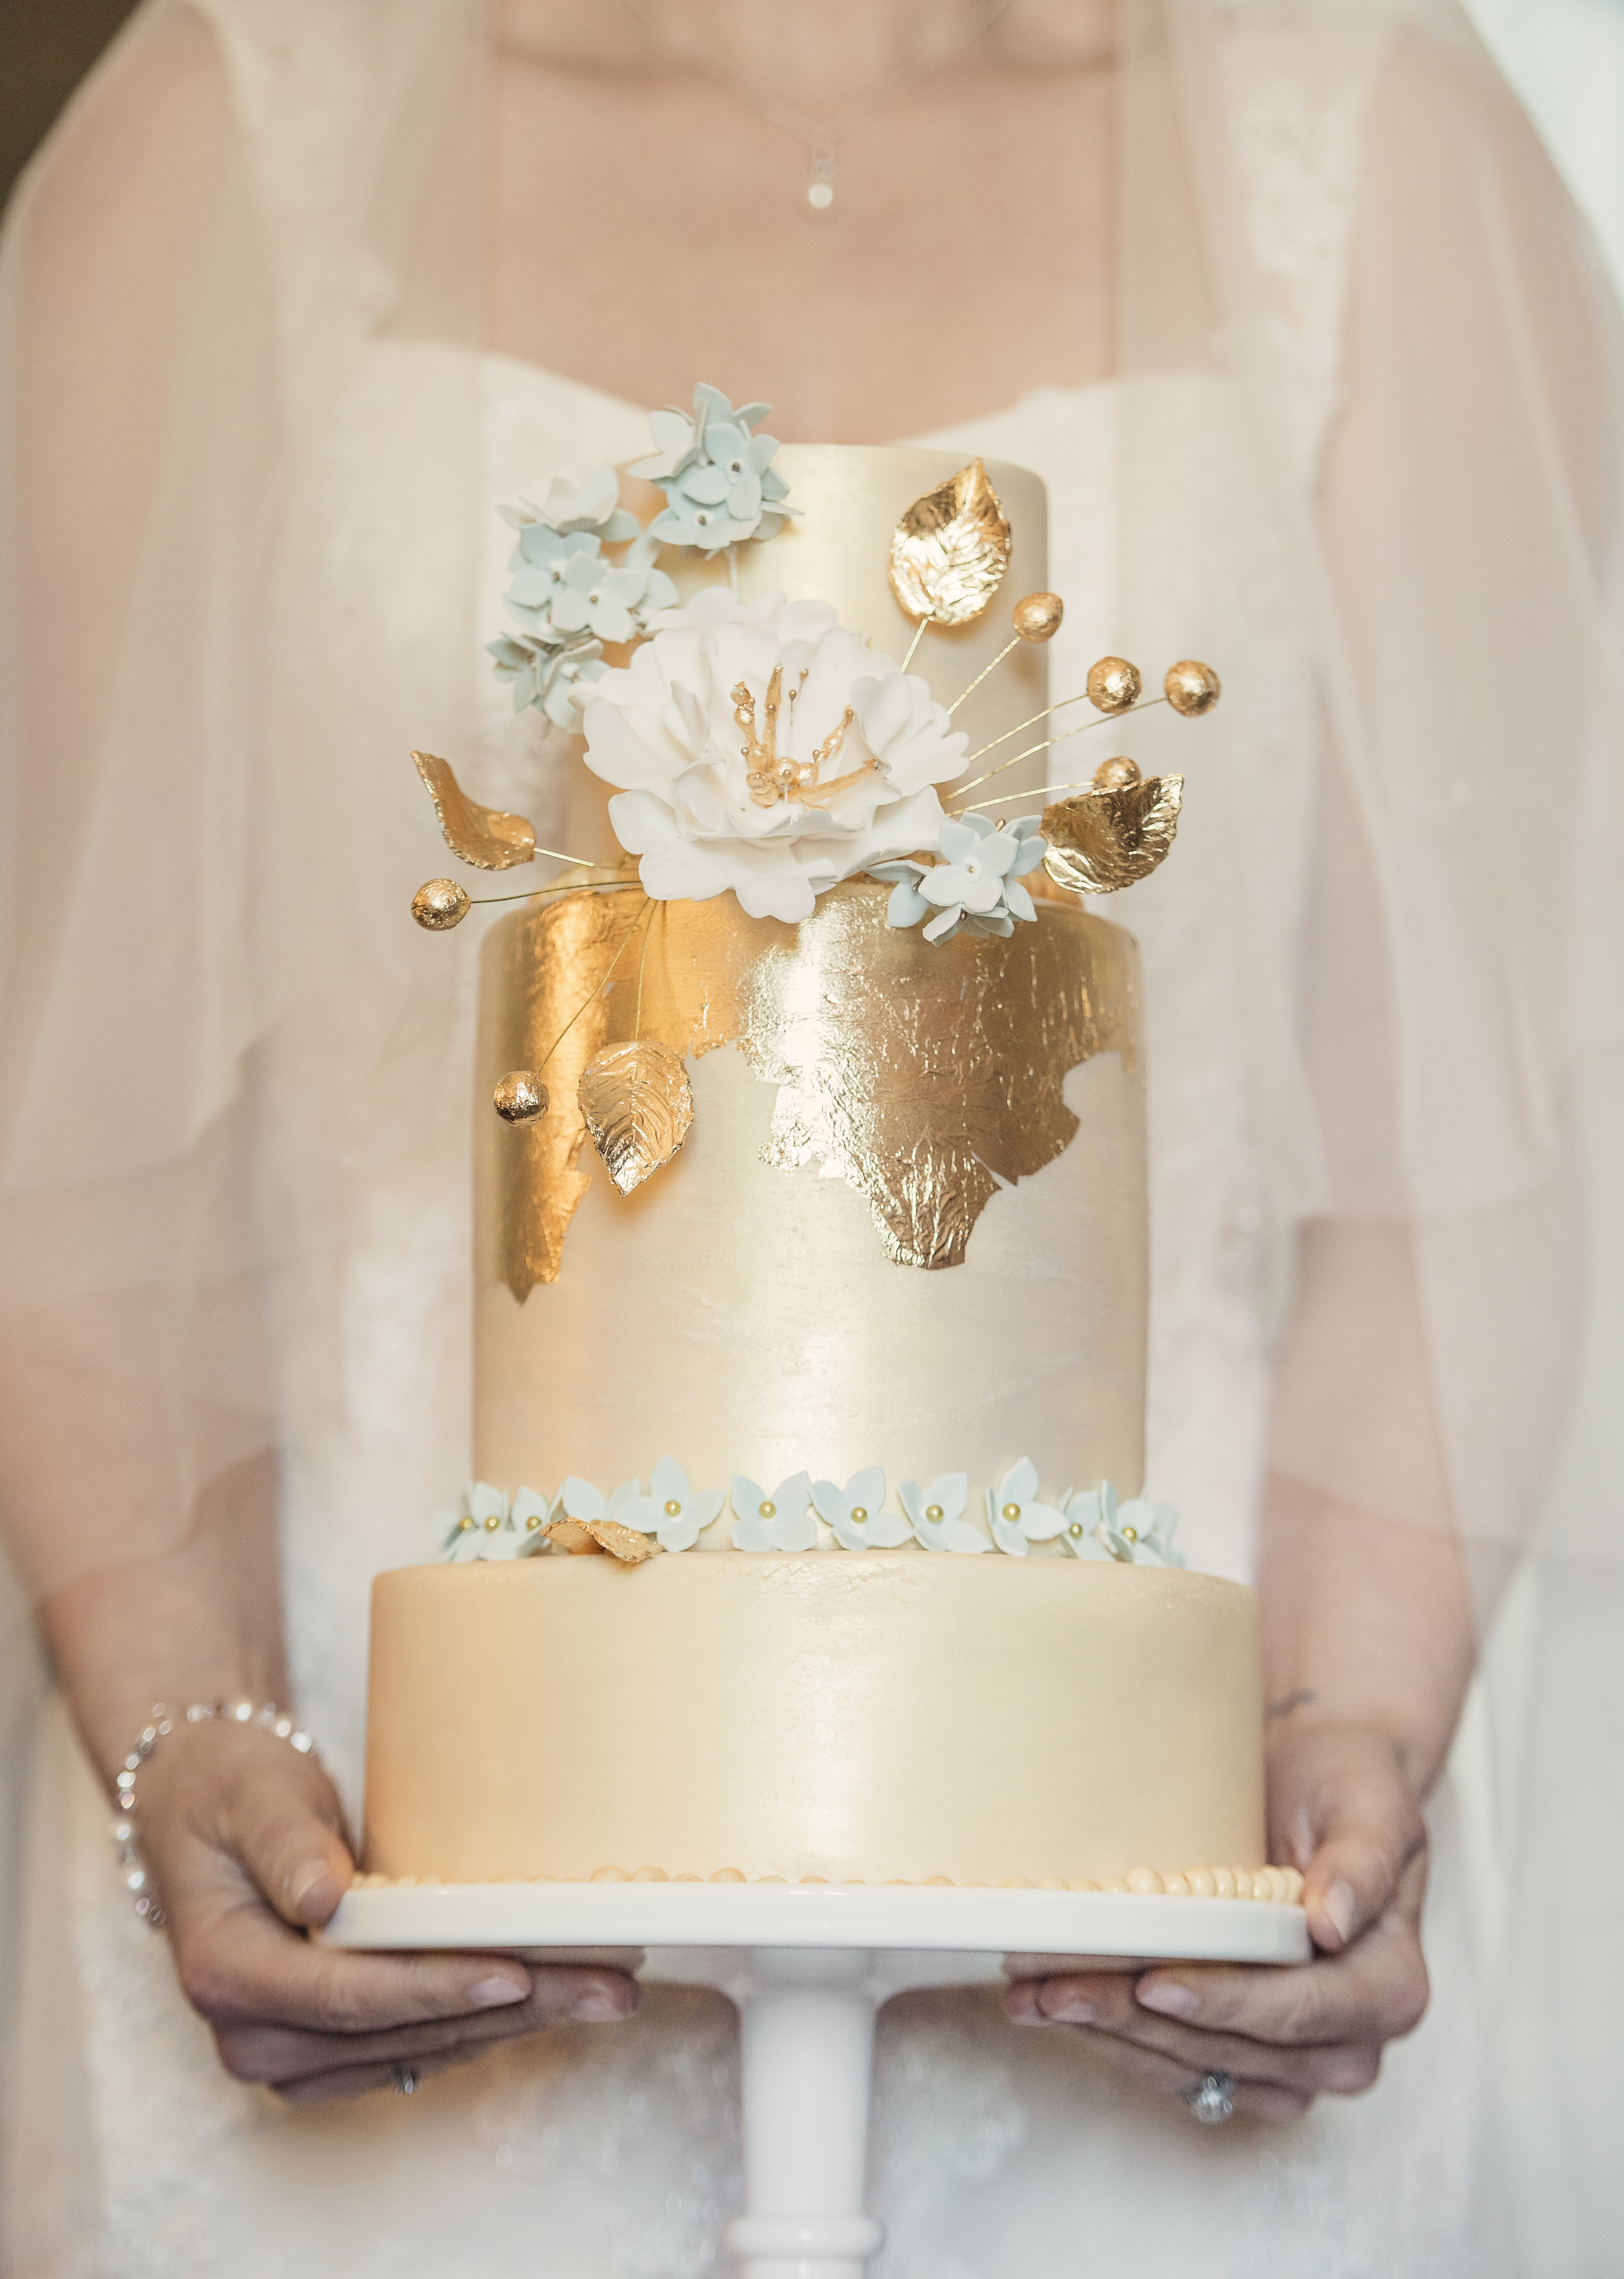 Bride holding 2 tiered gold foiled wedding cake